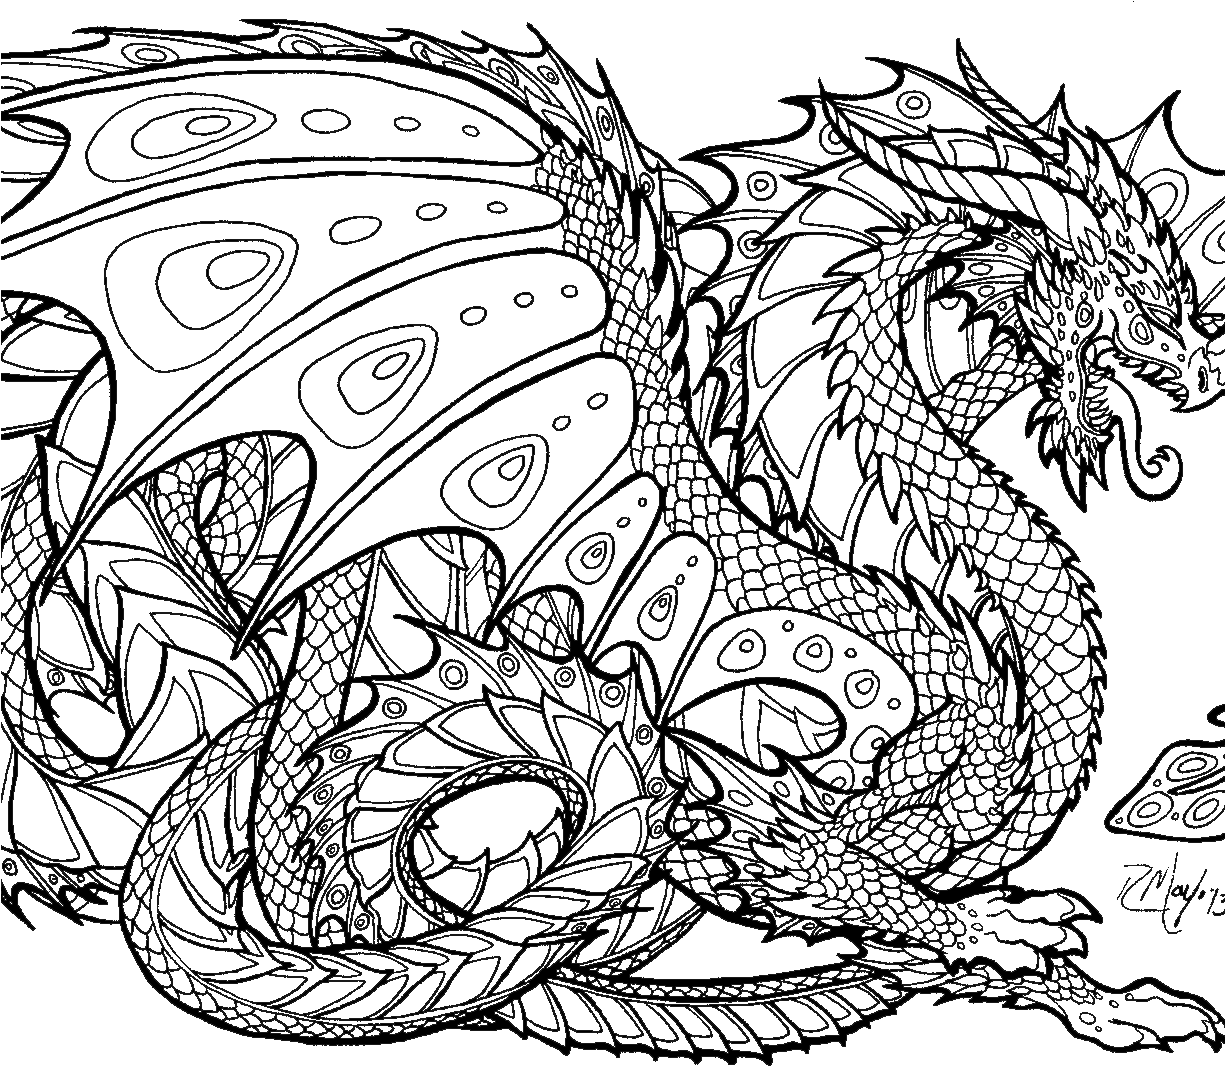 Download Announcing Realisticgon Coloring Pages With Astounding Hard Coloring Pages Of Dragons Full Size Png Image Pngkit